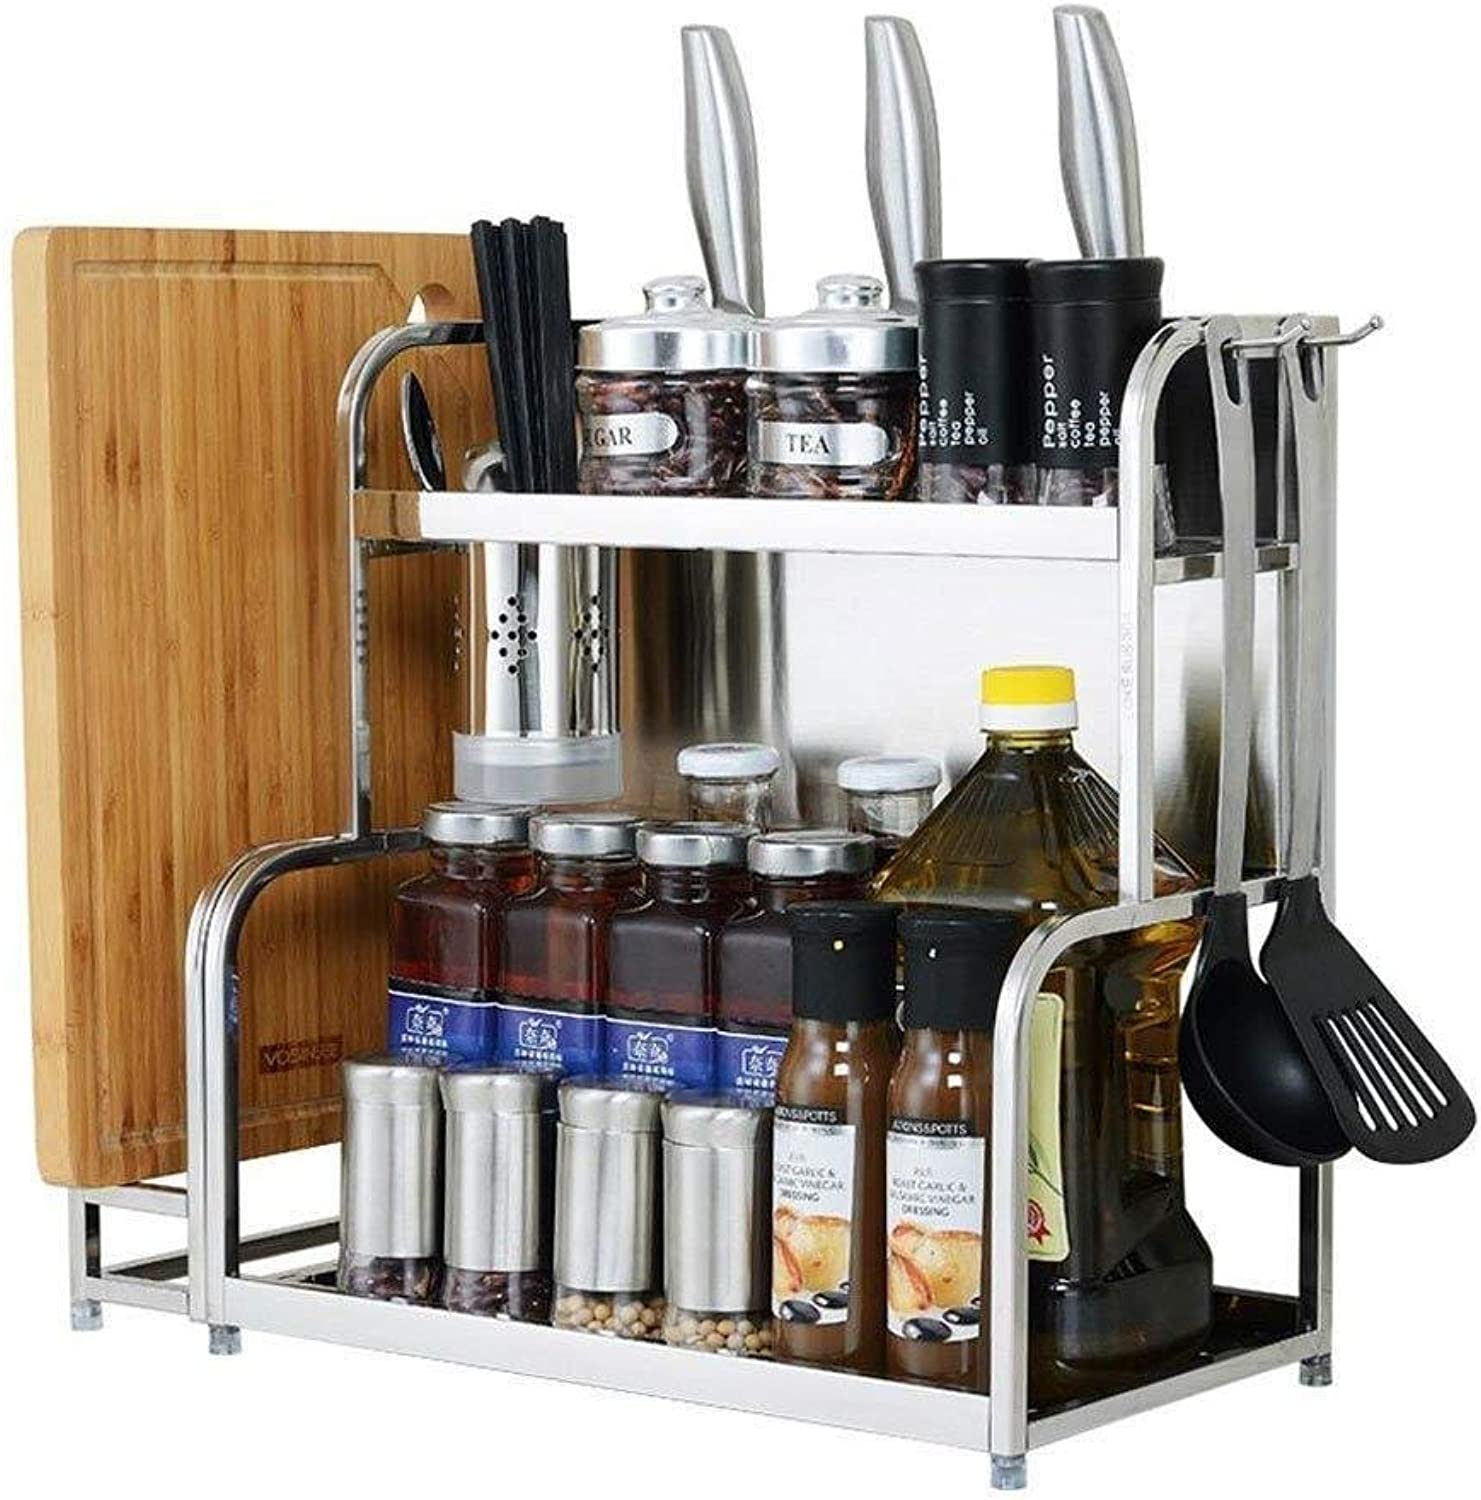 Storage Rack- Stainless Steel Kitchen Rack Floor Multi-Layer Storage Household Space Knife Holder Seasoning Spice Rack ZXMDMZ (Size   40CM)